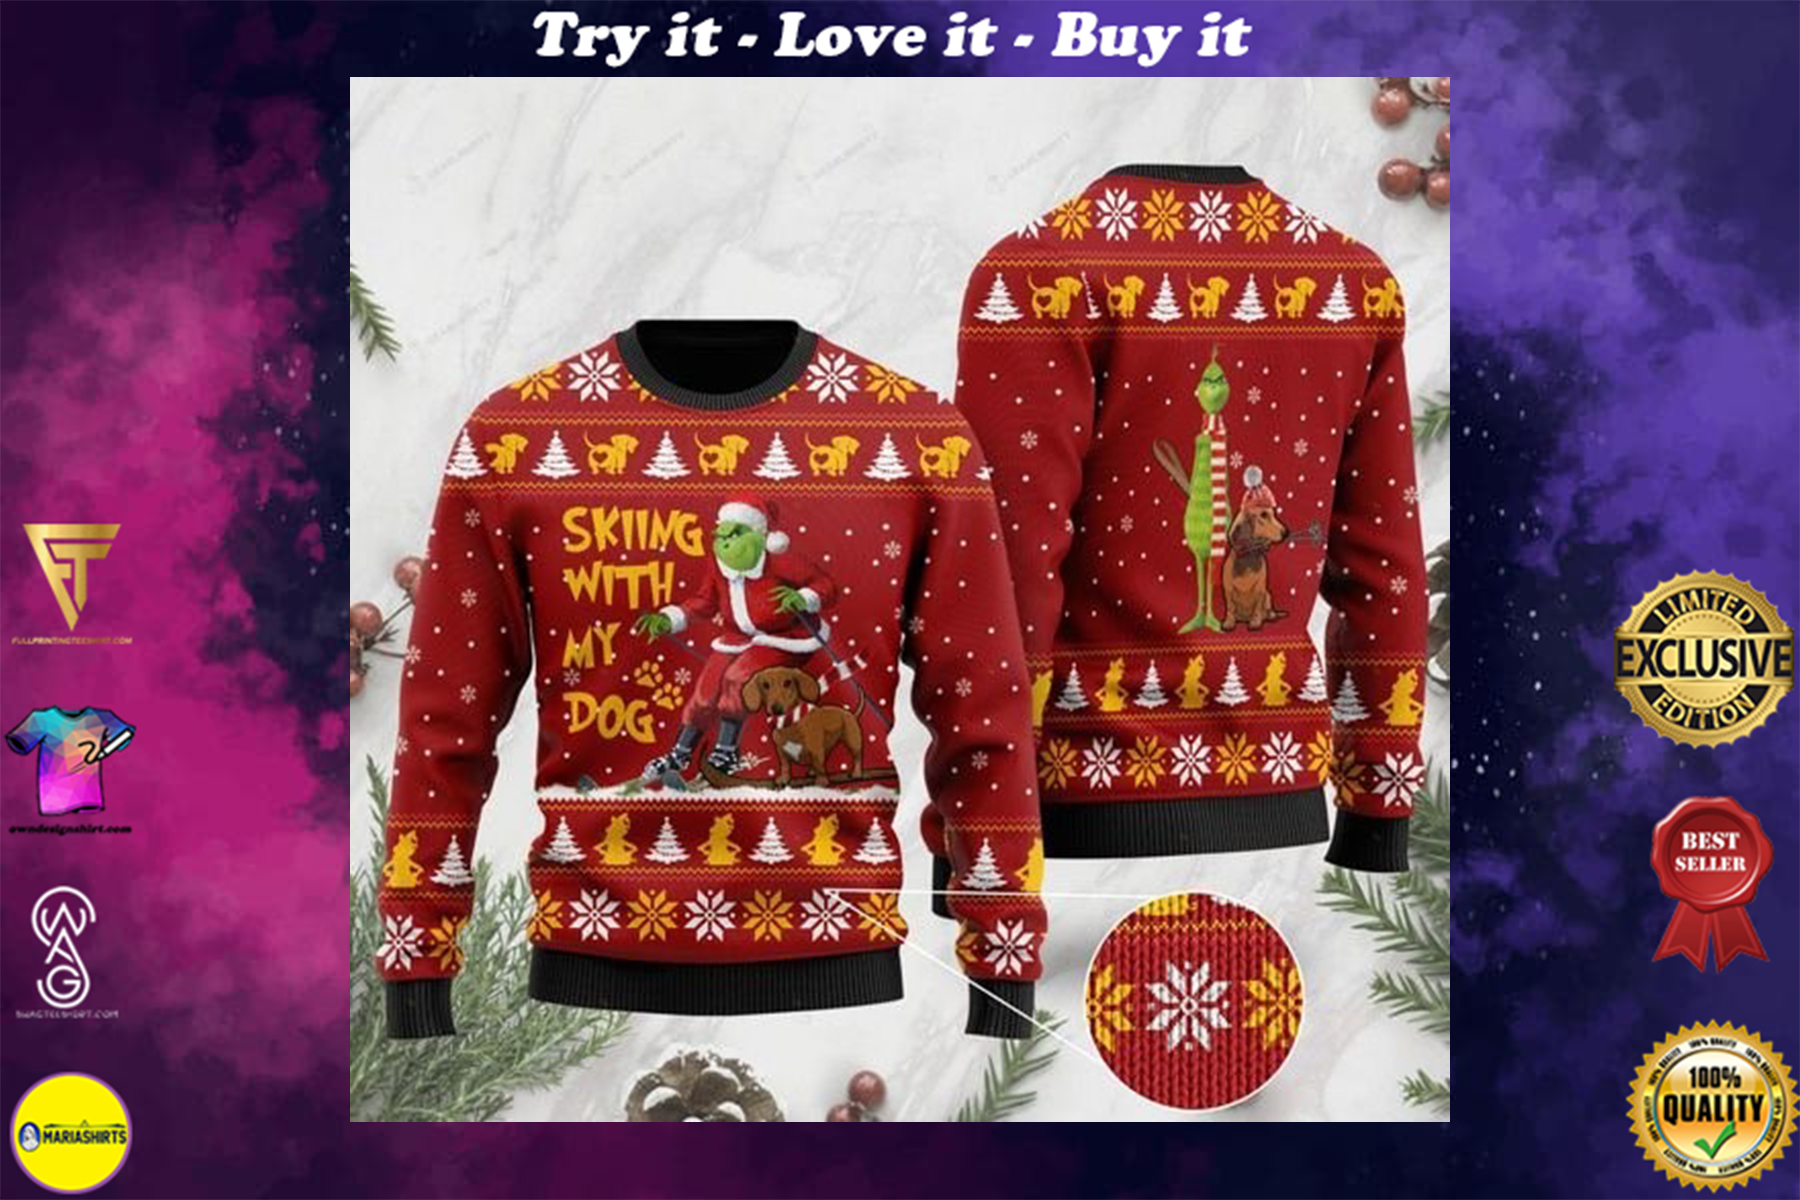 [highest selling] grinch and dachshund skiing with my dog christmas ugly sweater - maria